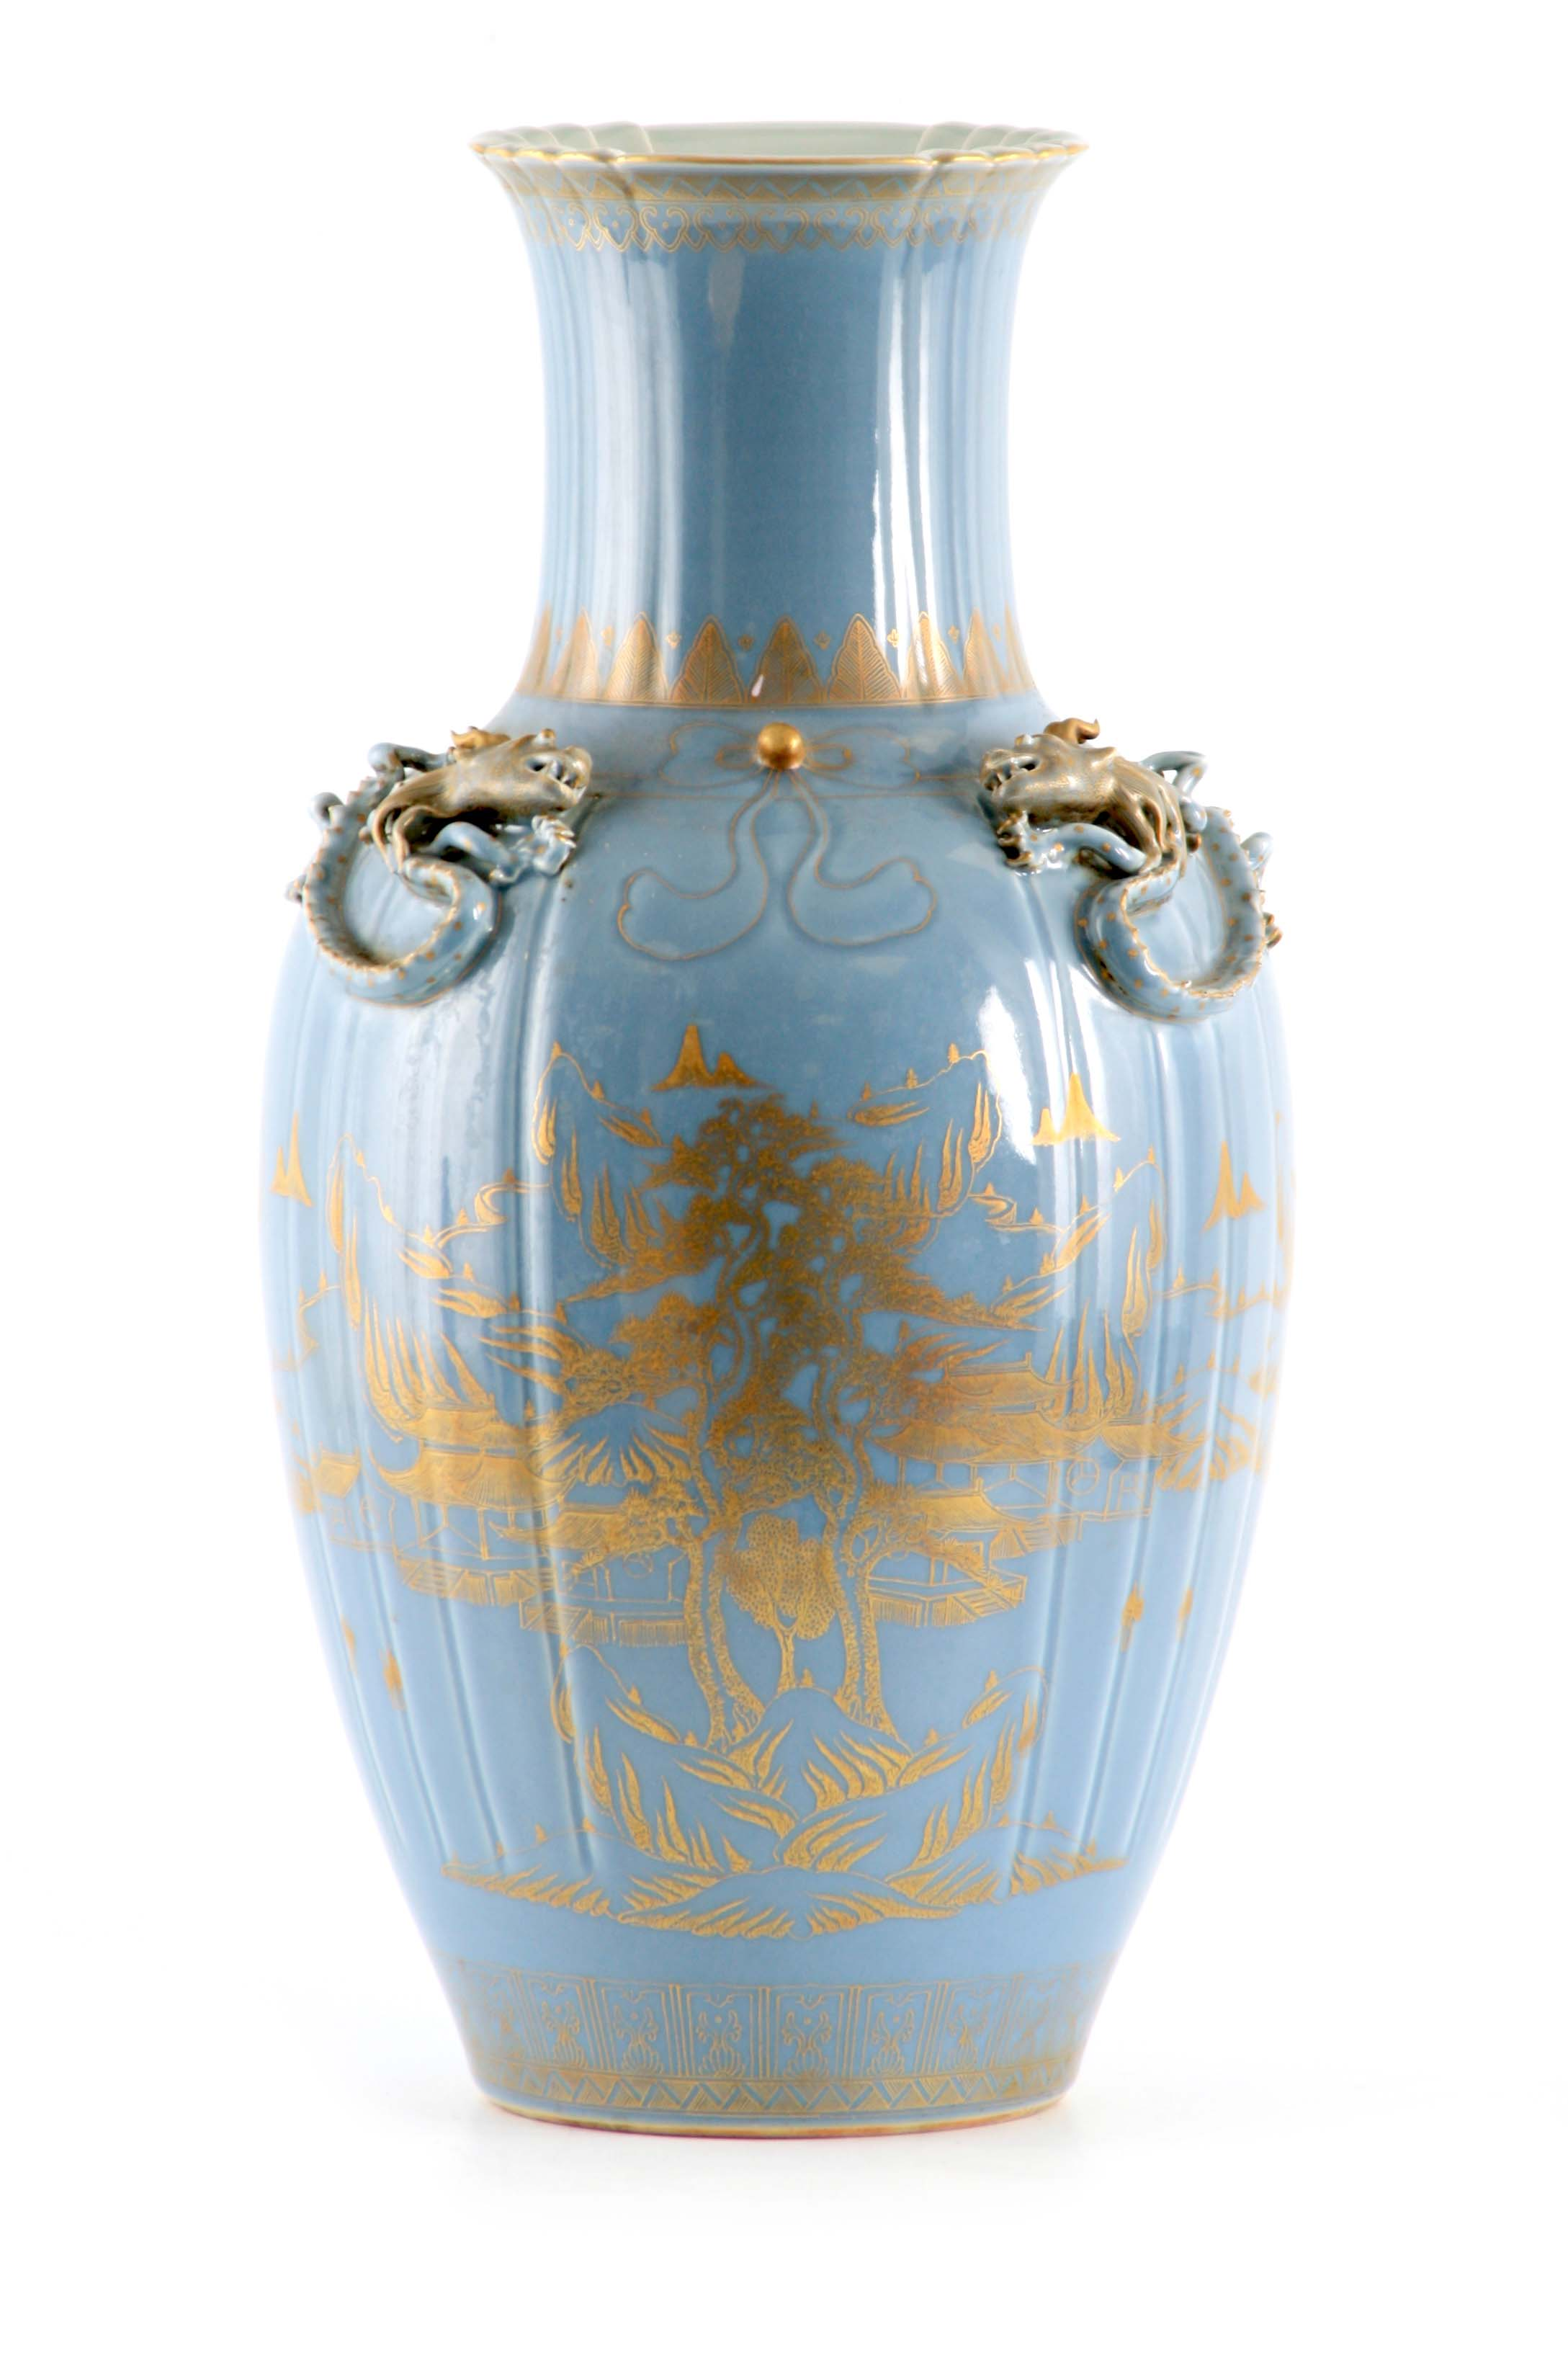 AN IMPRESSIVE 19TH CENTURY CHINESE BLUE AND GILT DECORATED VASE of ribbed shape with scrolled